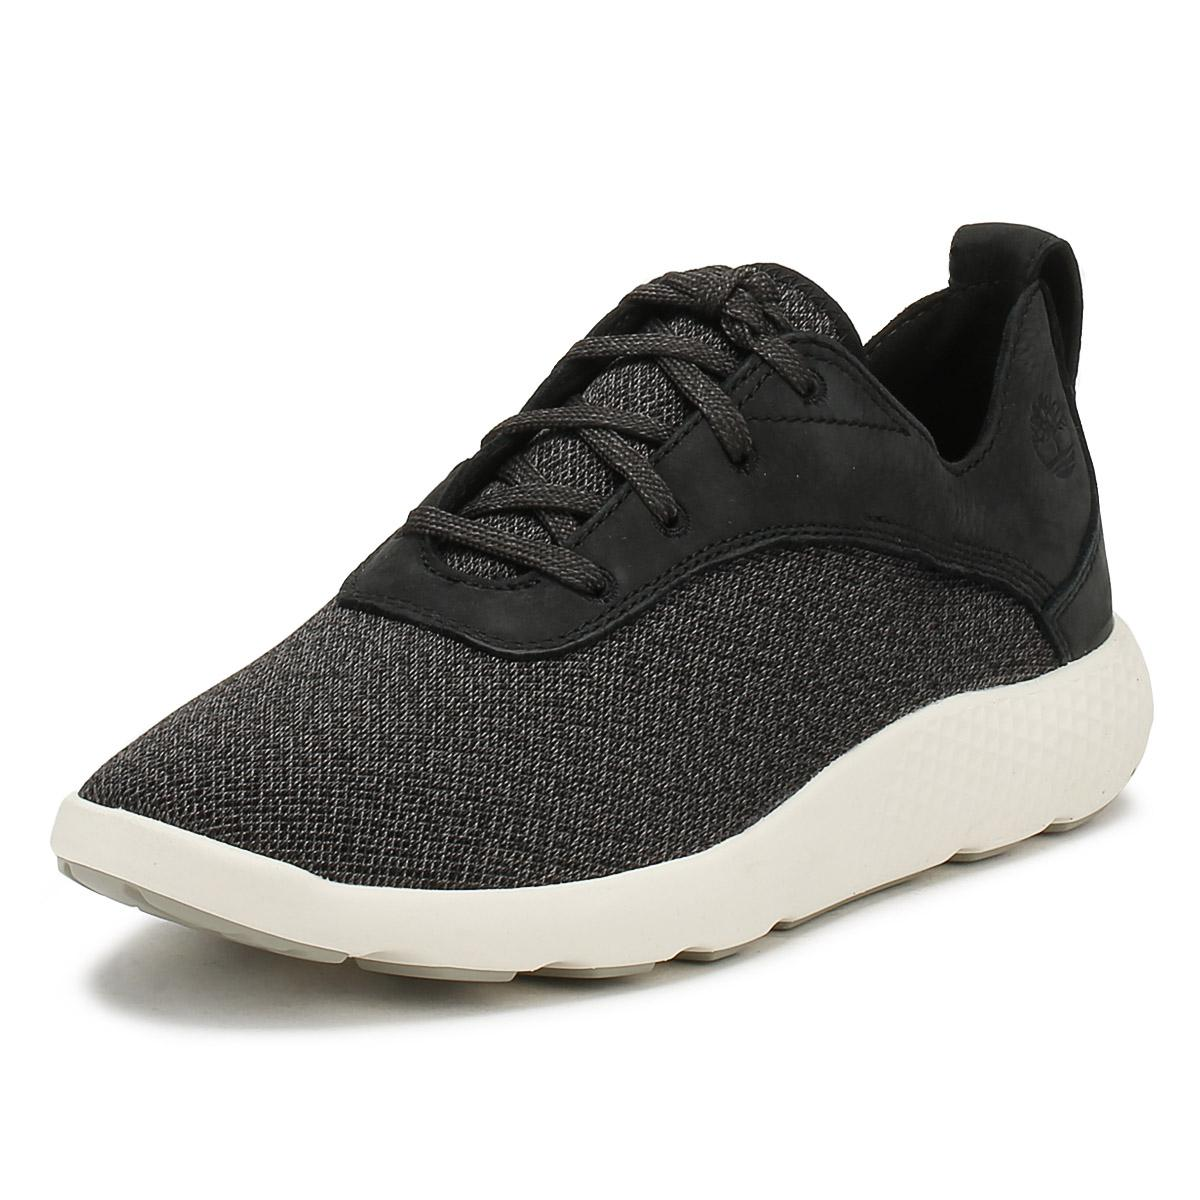 b0bf75d4b8f ... Timberland - Mens Black Flyroam Ox Trainers Men's Shoes (trainers) In  Black for Men. Visit TOWER London. Tap to visit site